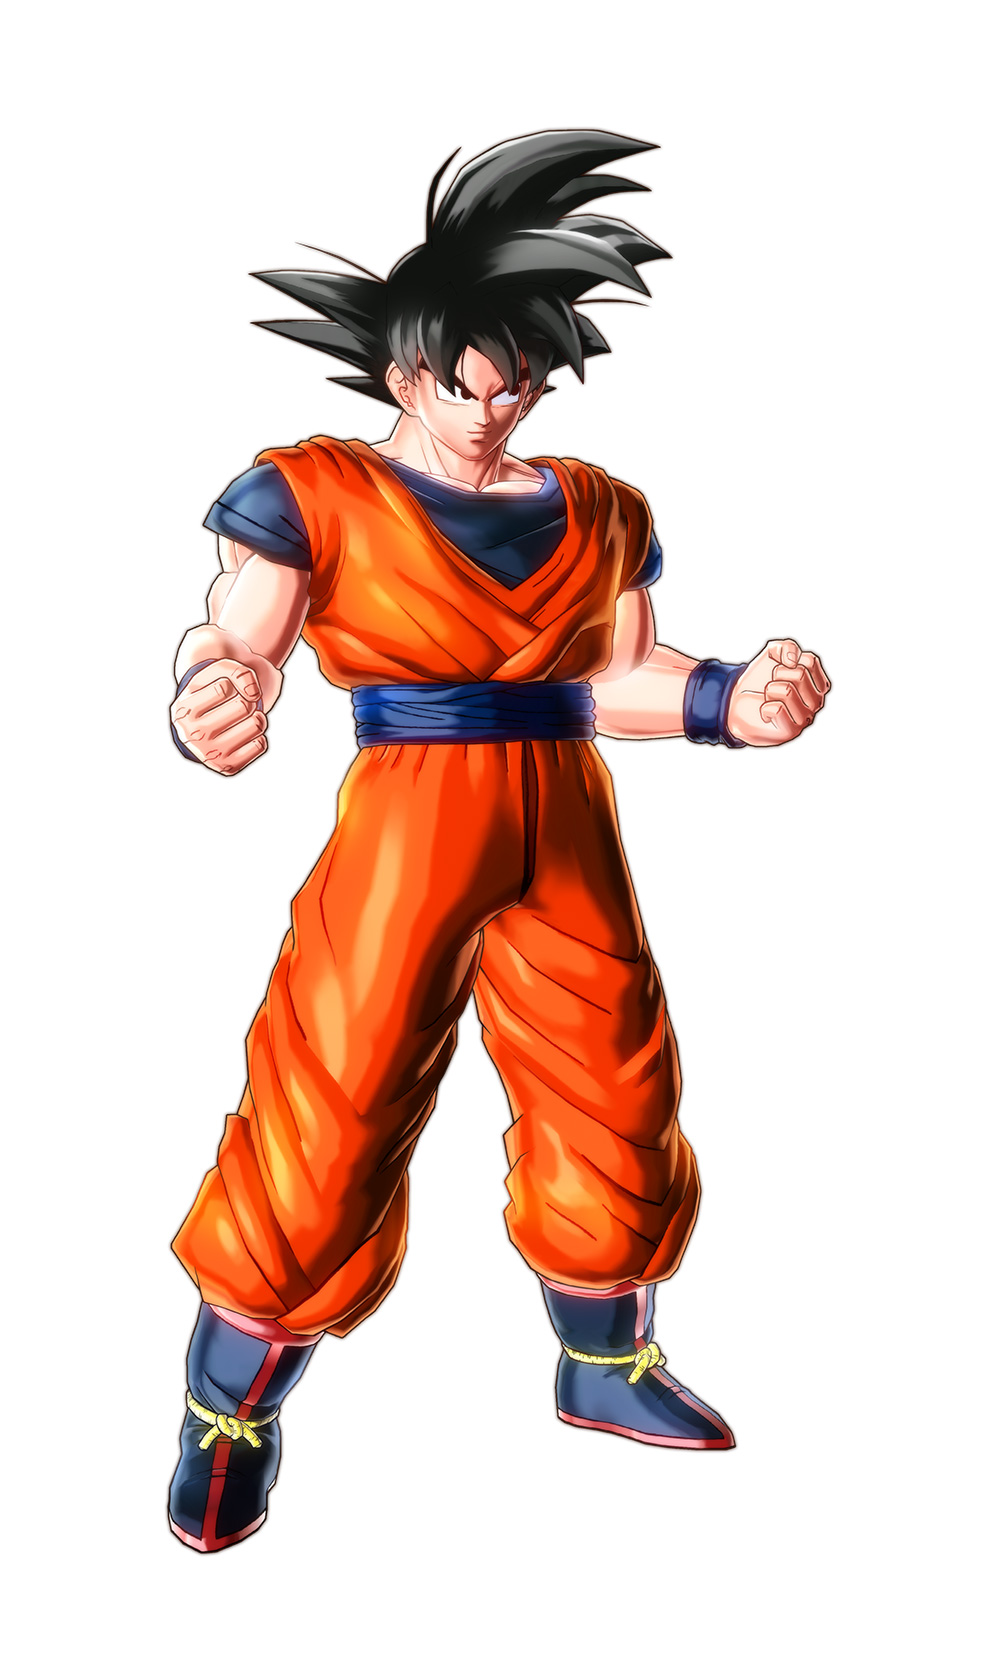 Dragon-Ball-Z-Xenoverse-Goku